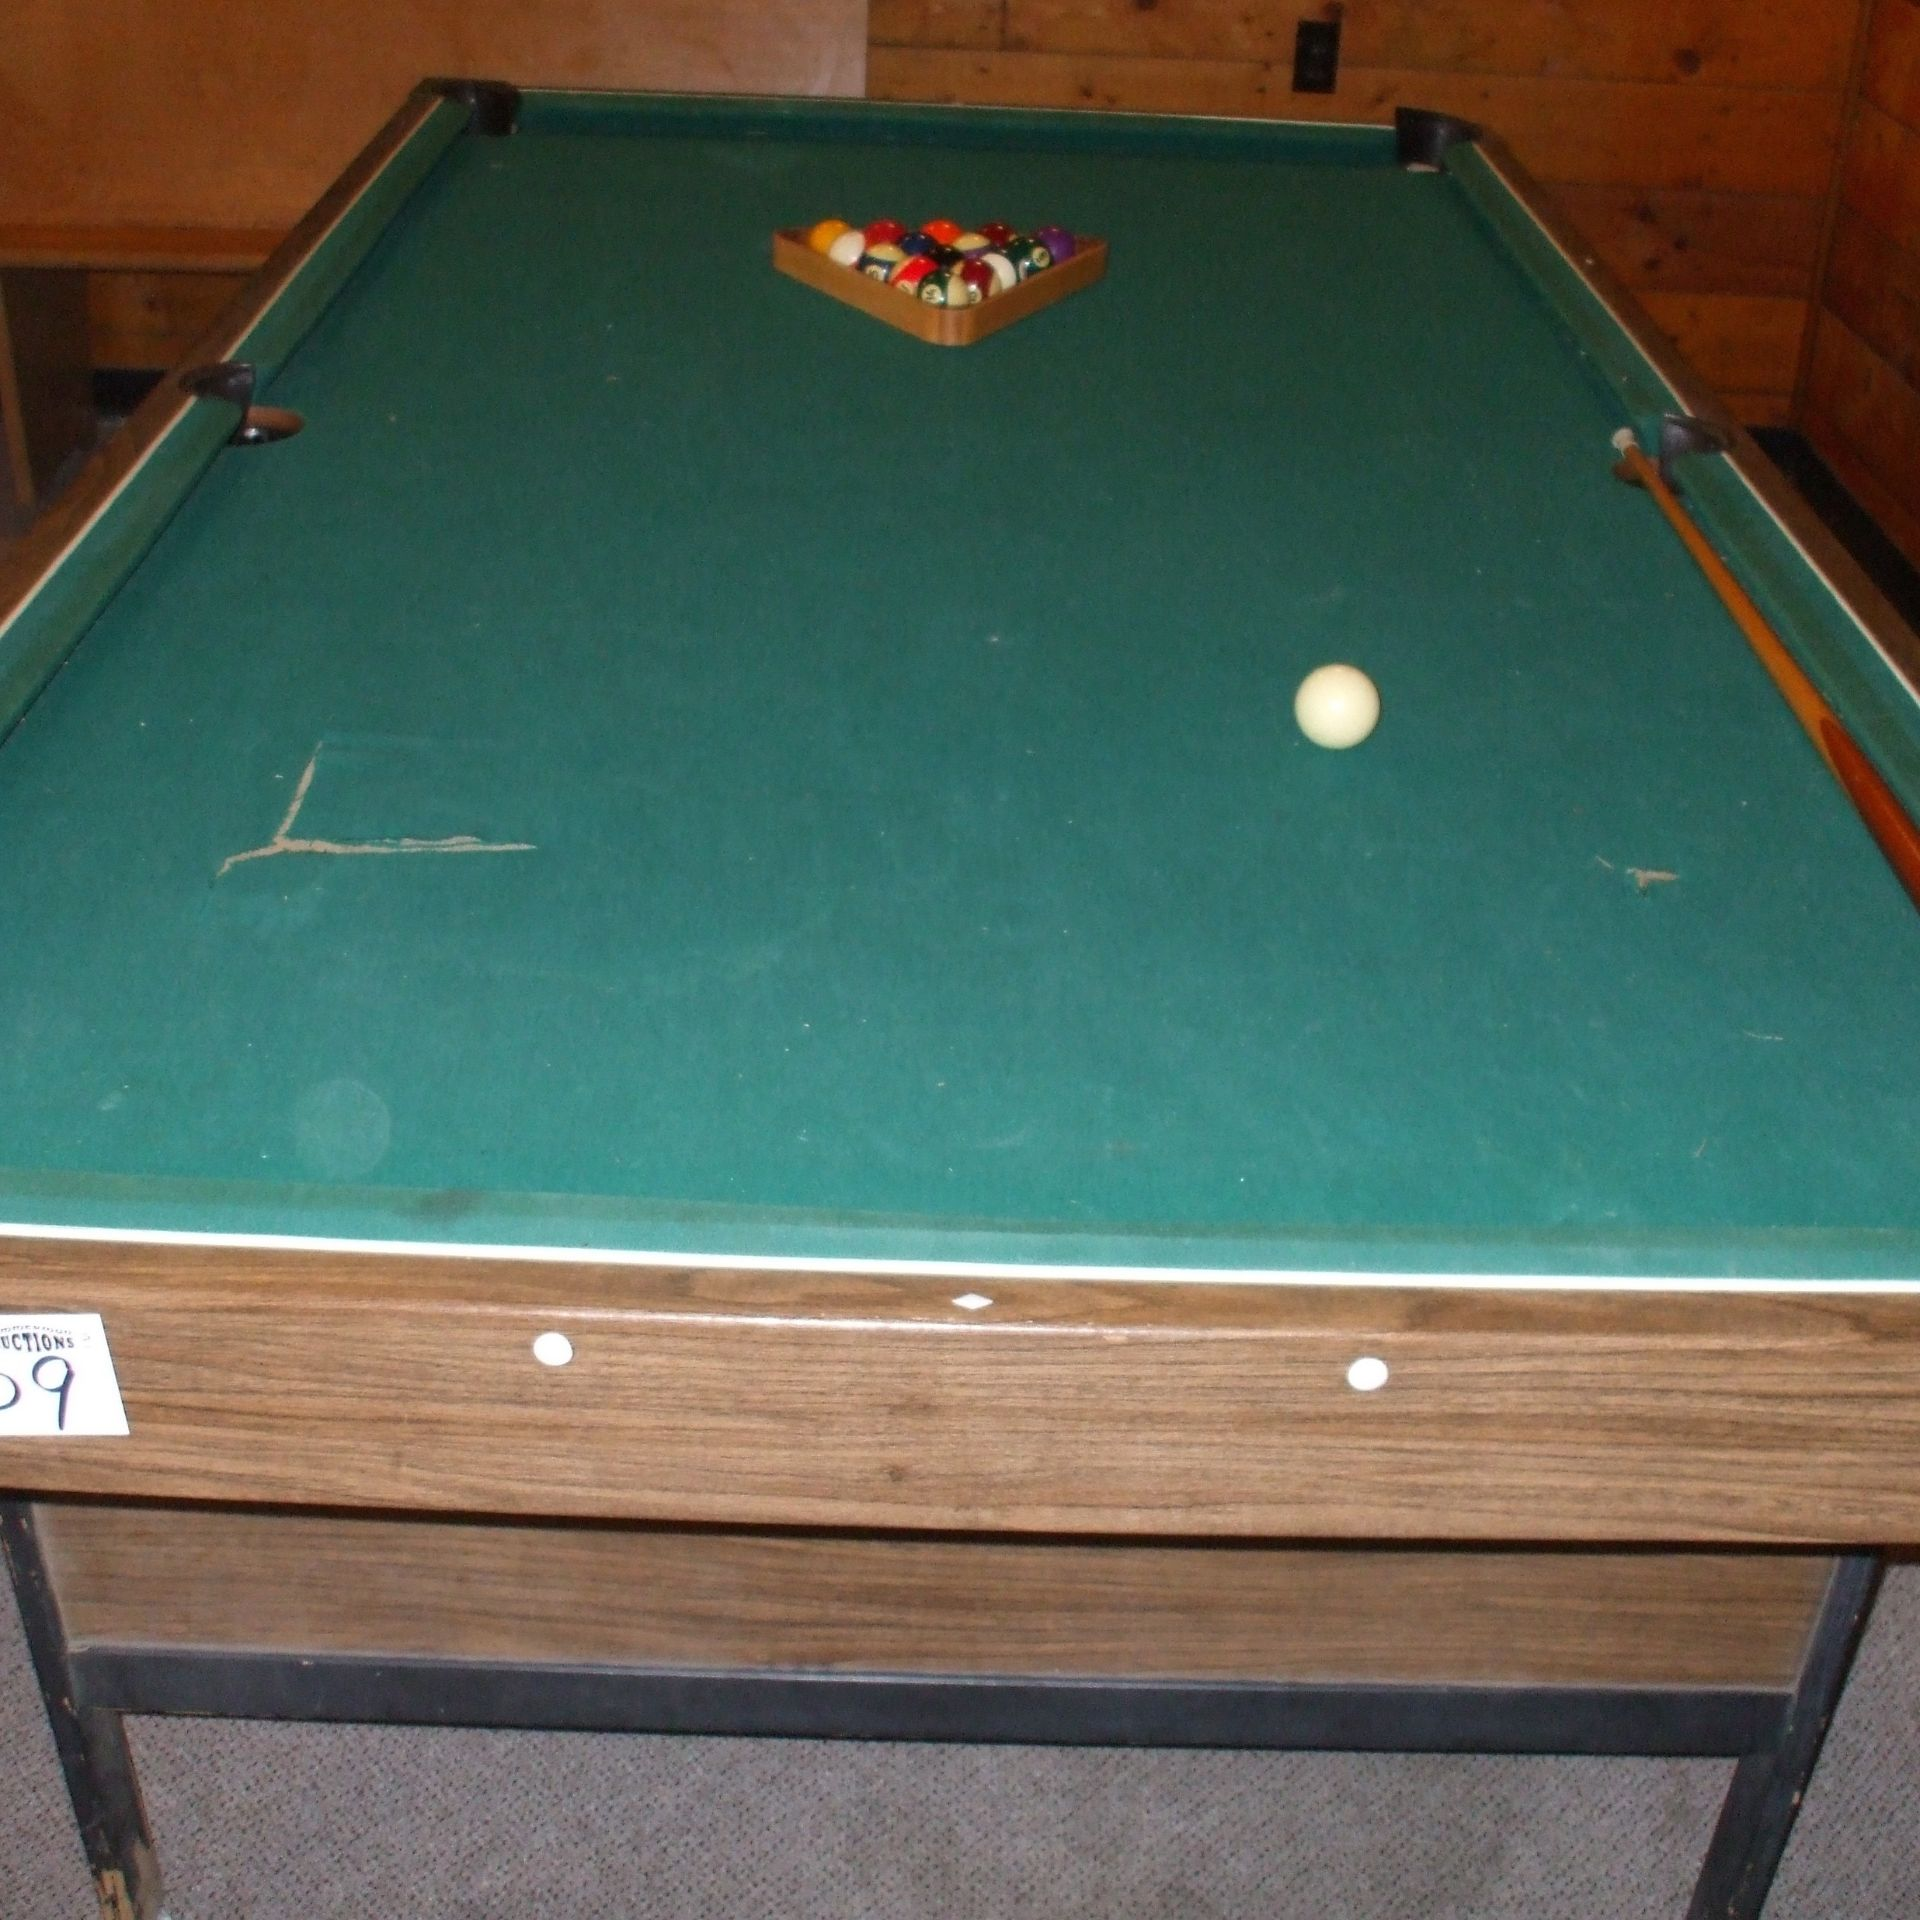 Pool table, balls & cues - Image 4 of 4